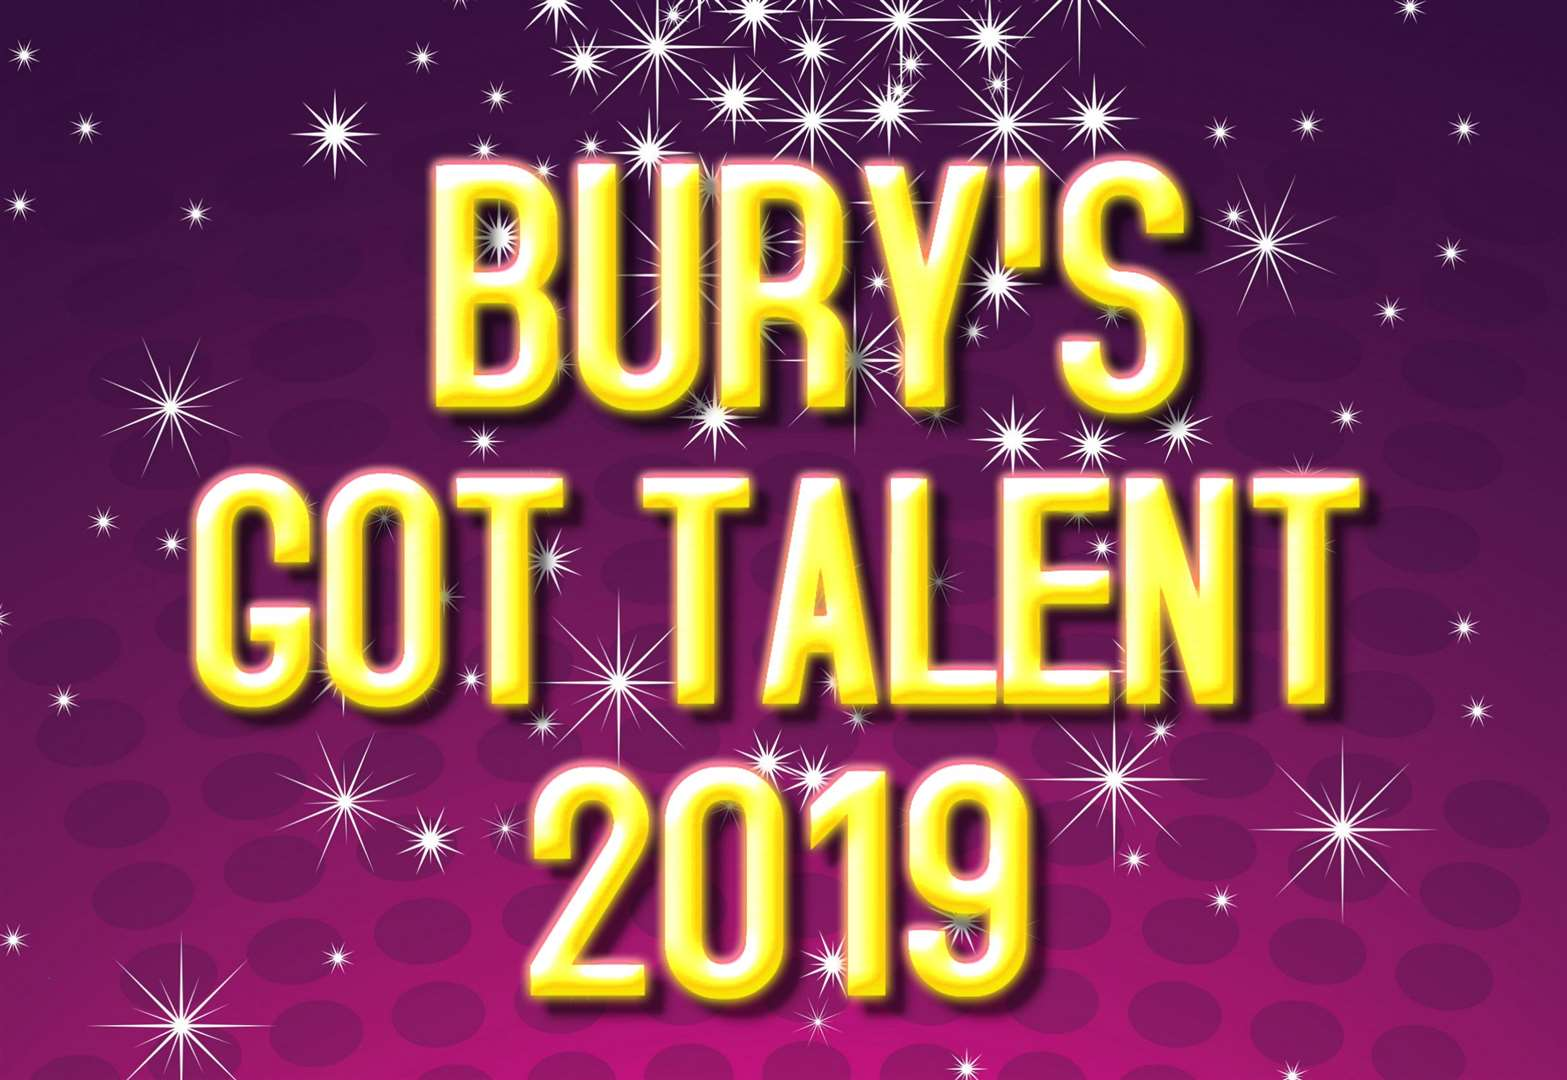 Have you got the talent to win?